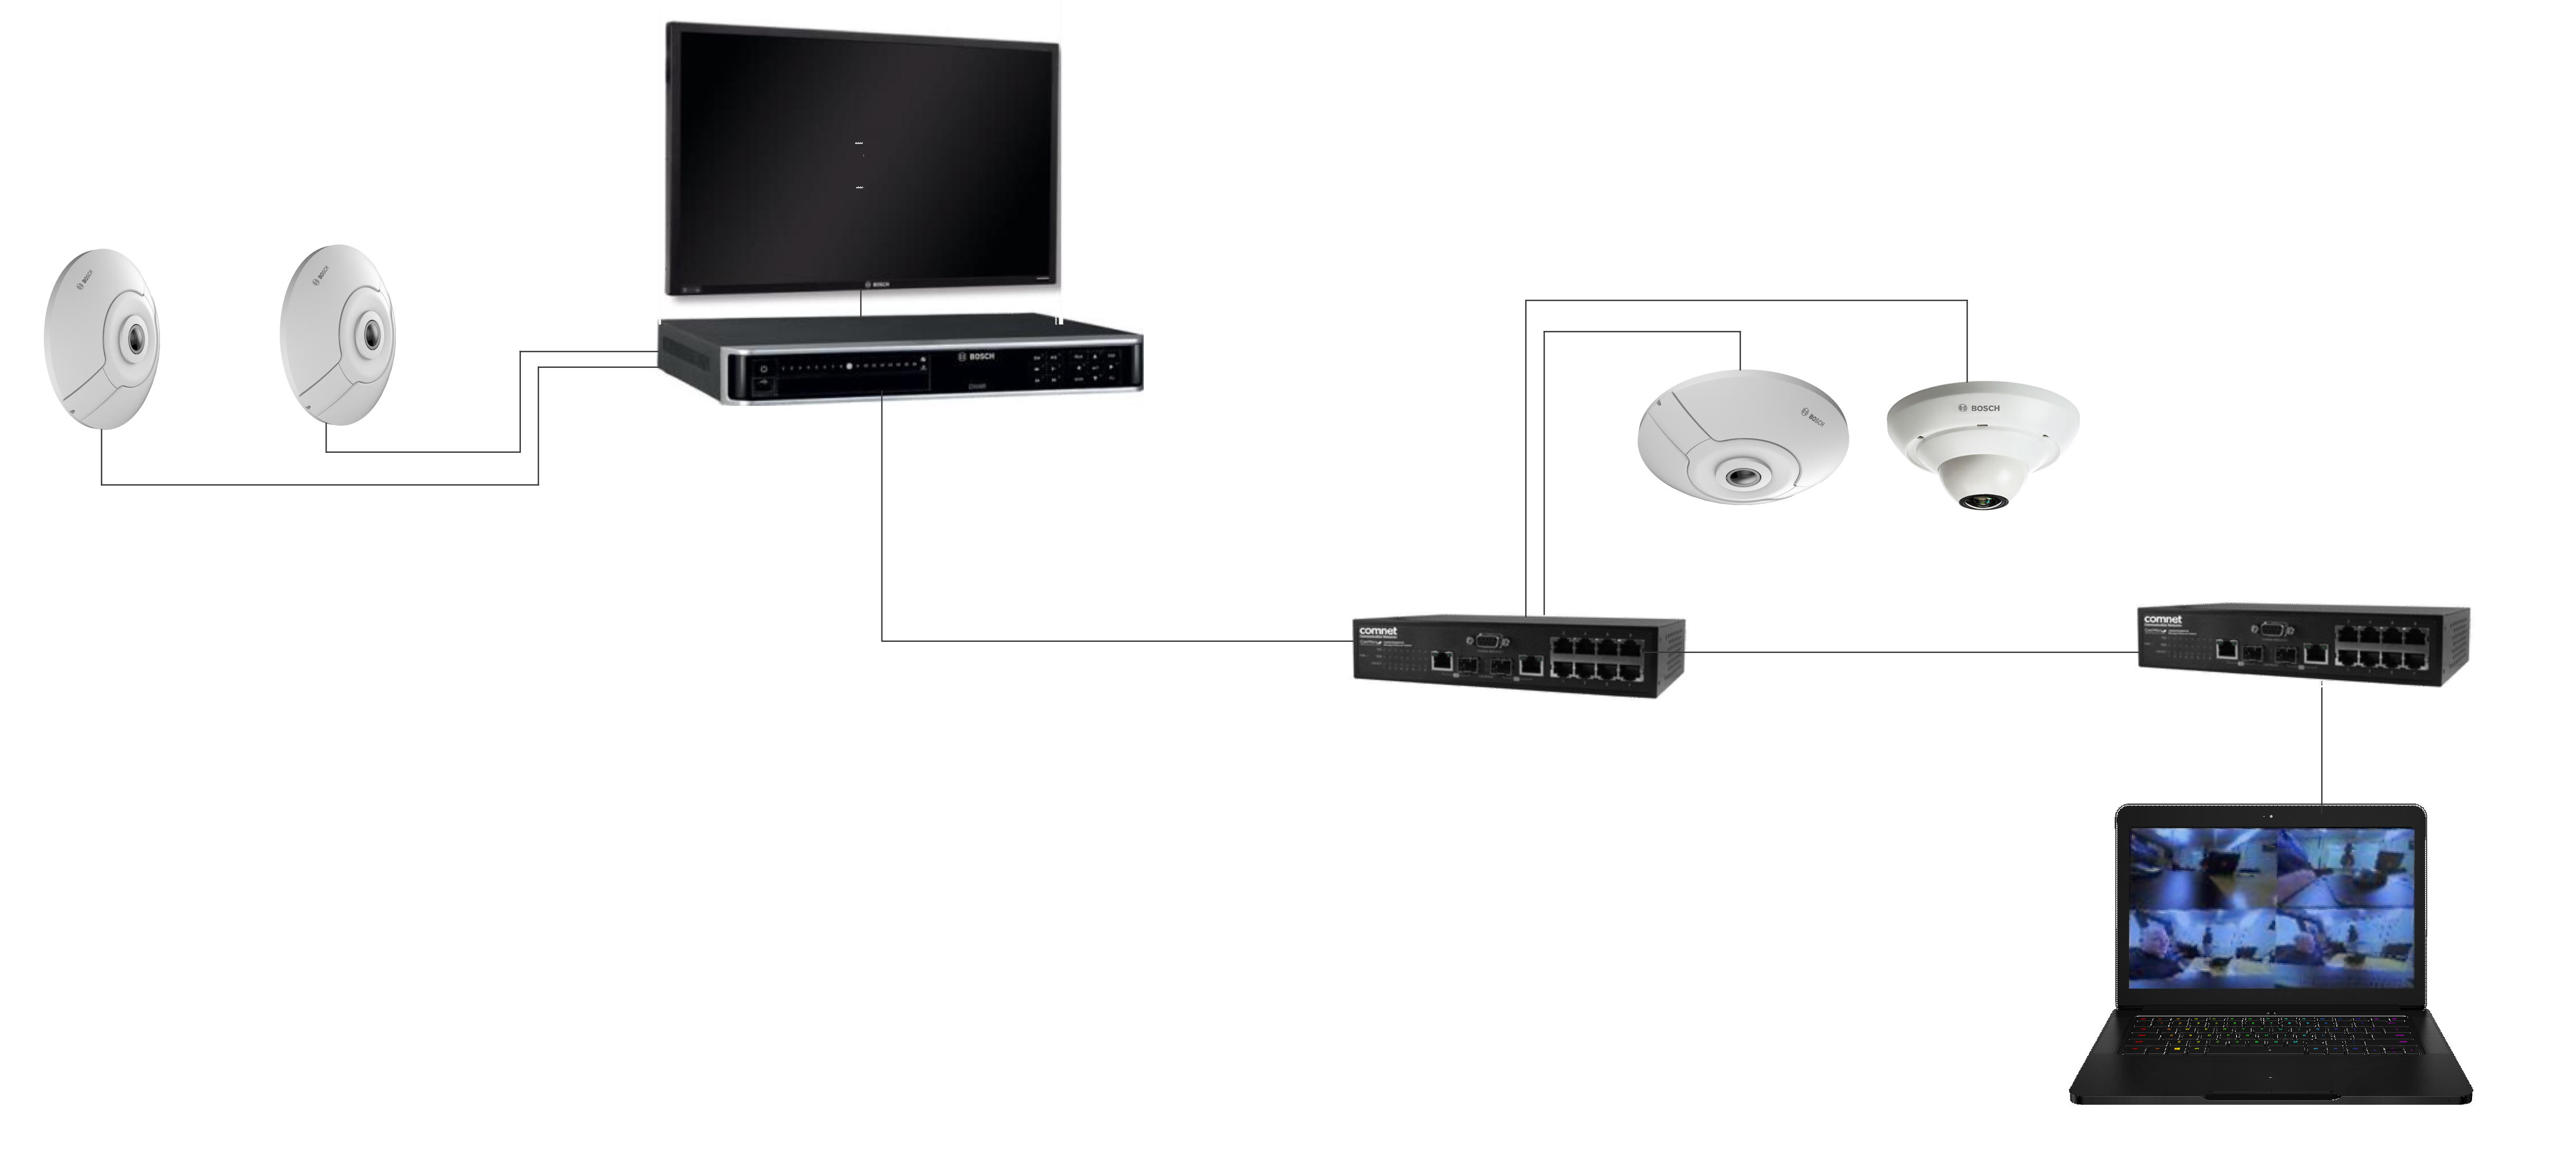 Panoramic with Divar Network 3000 Diagram Option 2.png